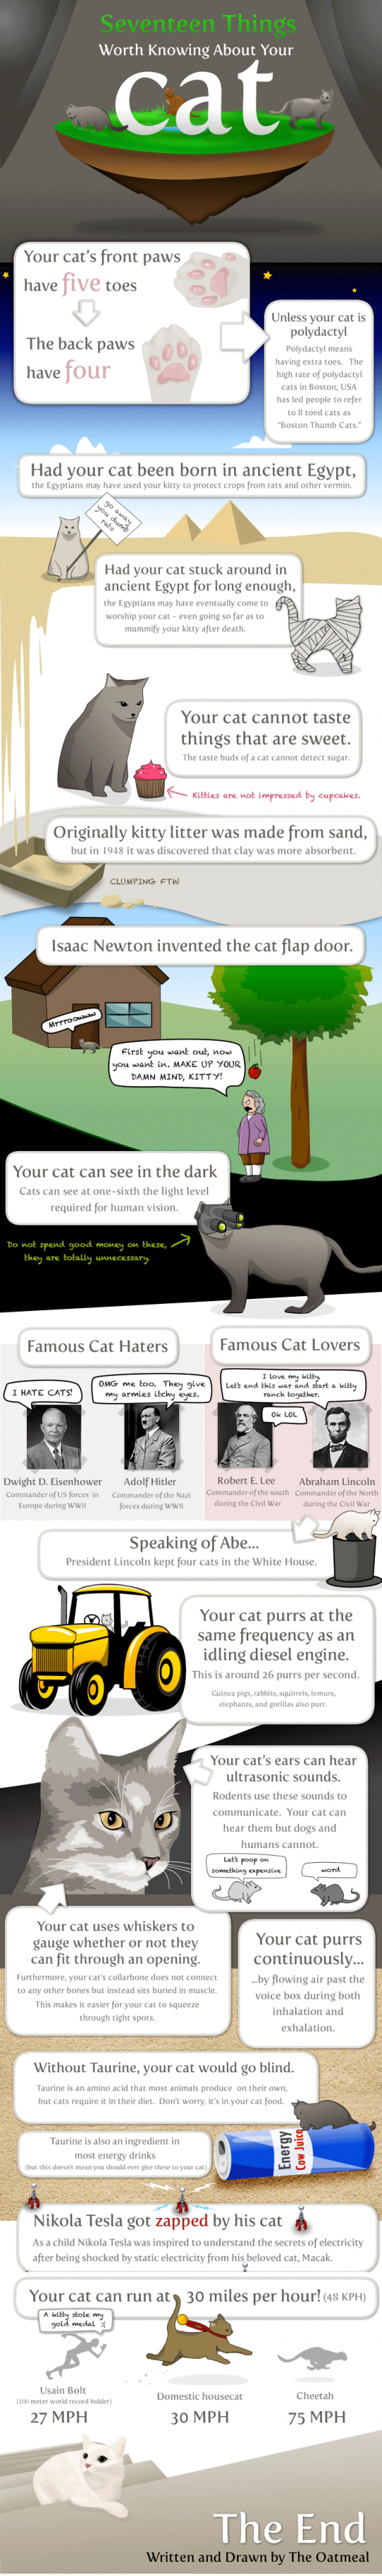 17 Things Worth Knowing About your Cat